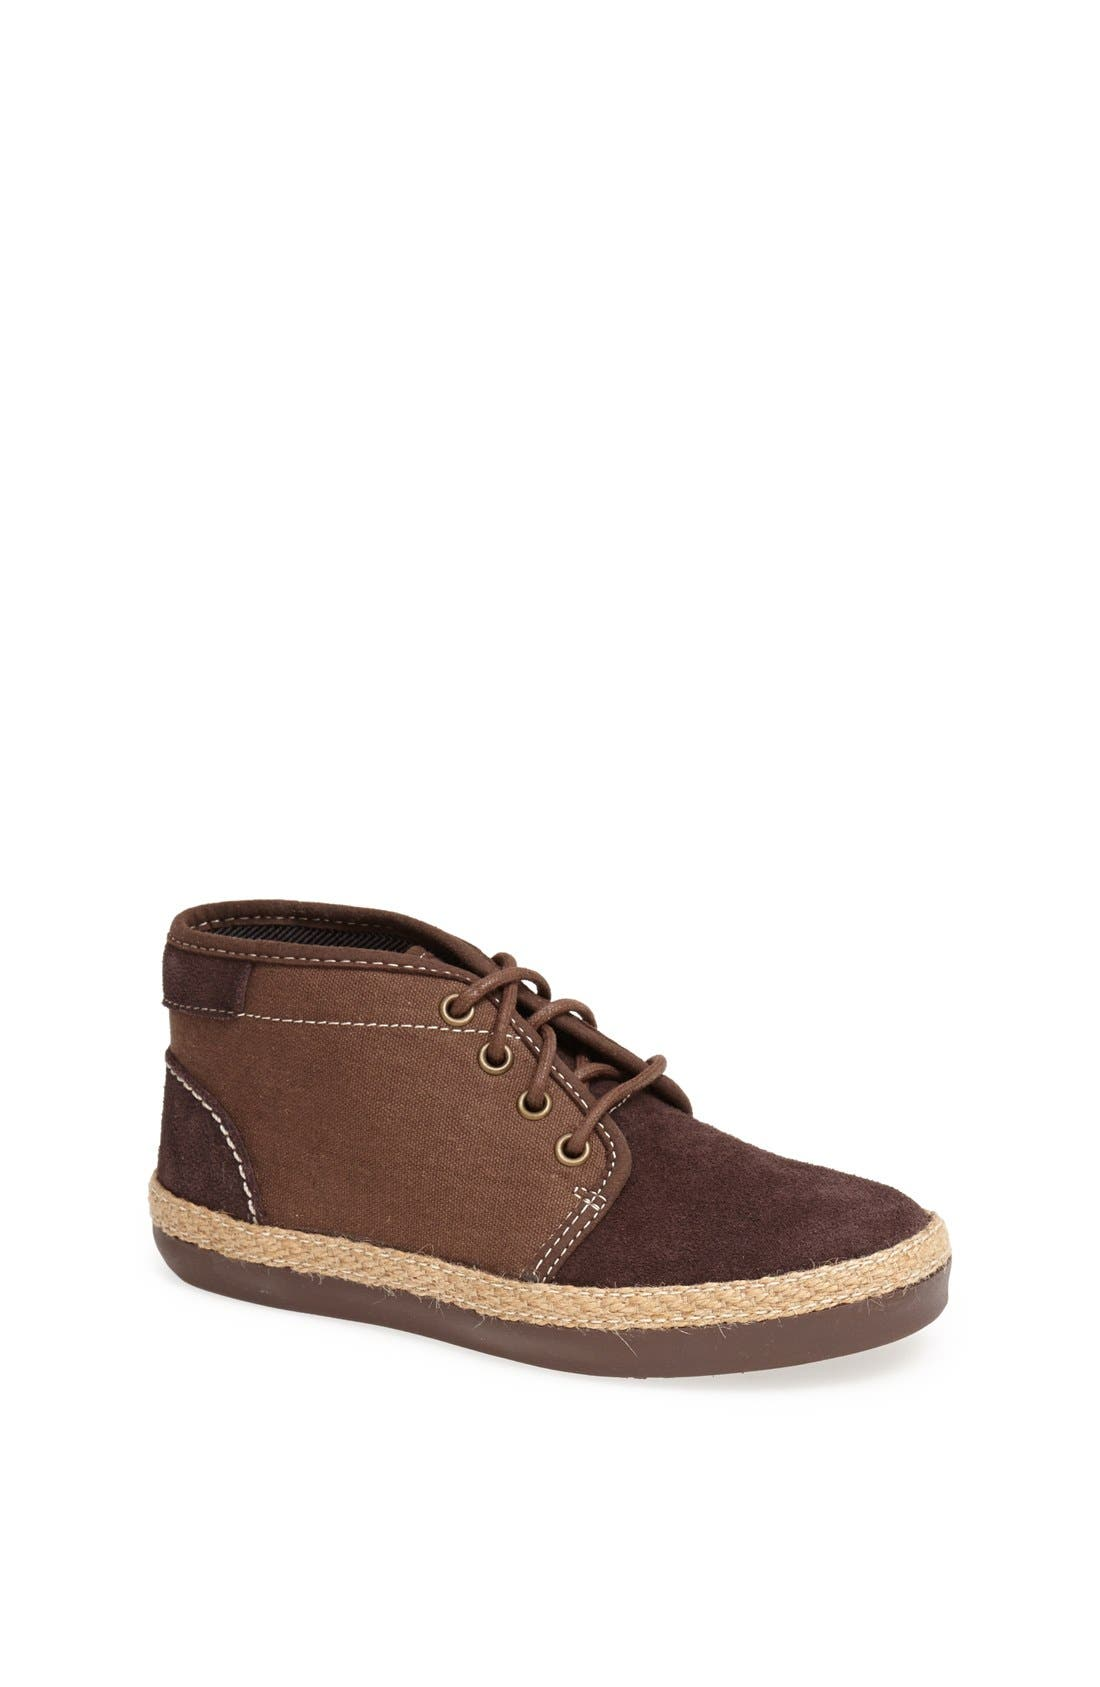 Alternate Image 1 Selected - UGG® Australia 'Casper' Chukka Boot (Toddler, Little Kid & Big Kid)